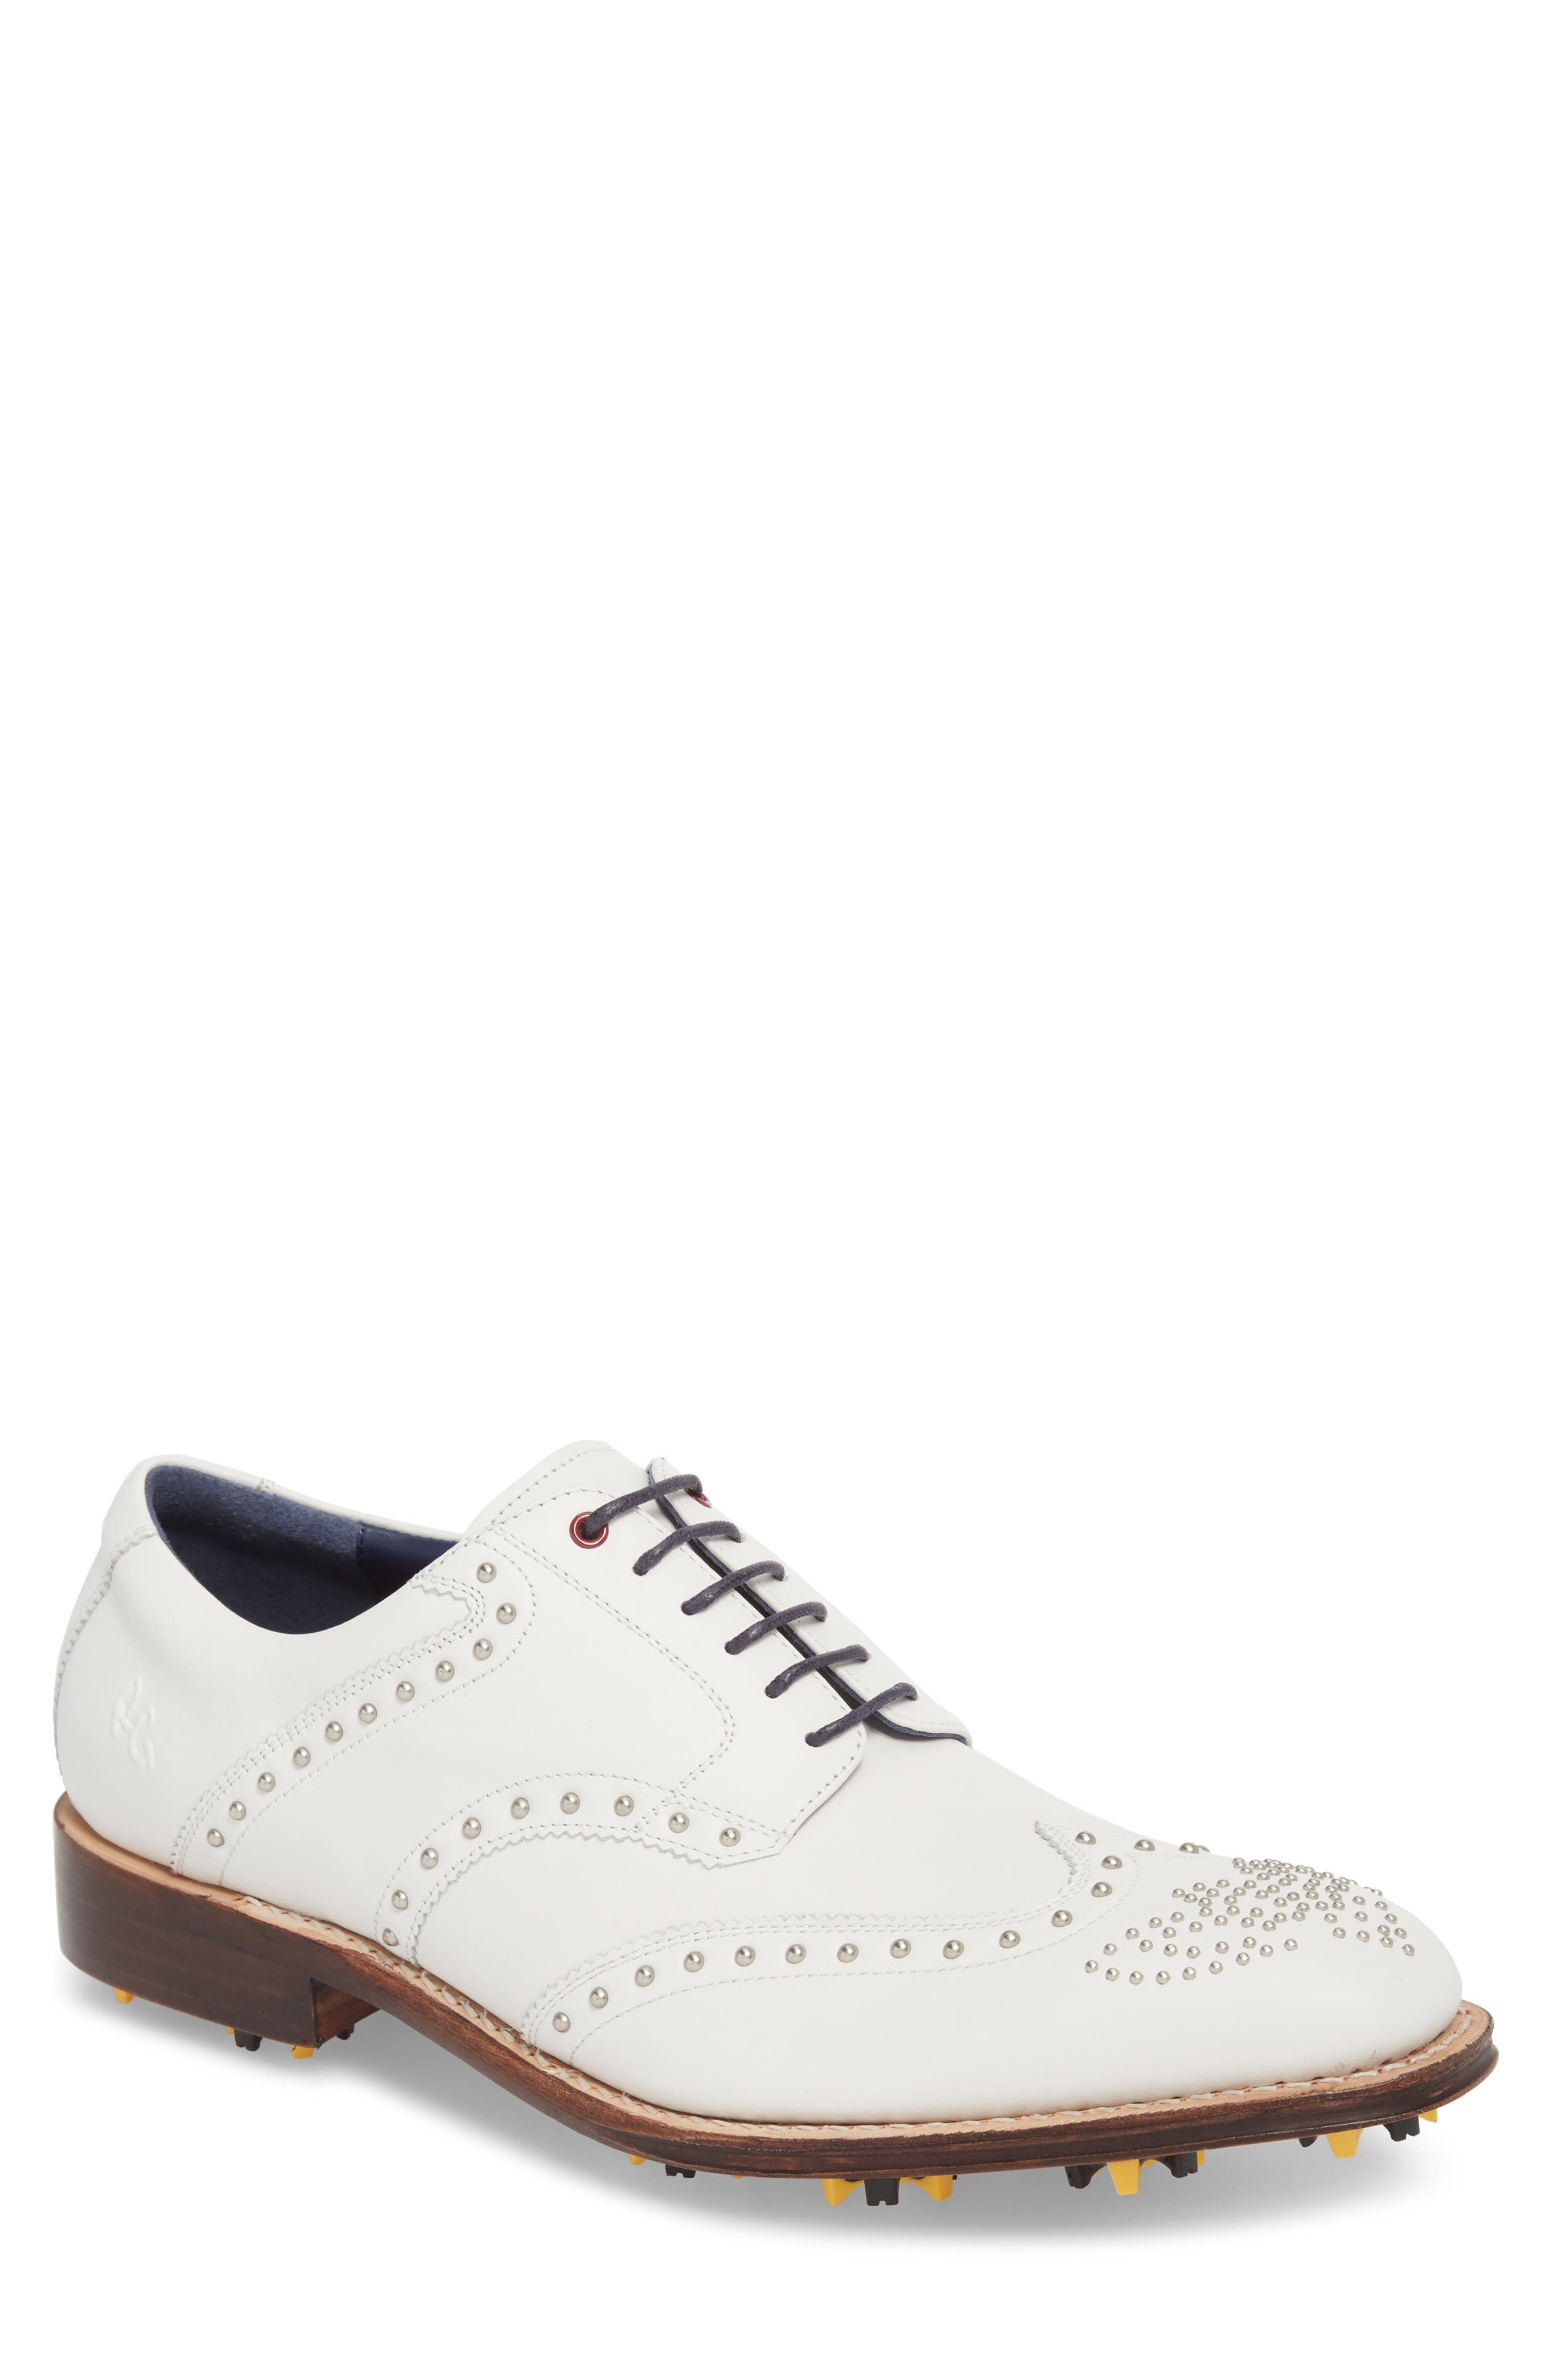 Rocker Plain Toe Oxford with Removable Cleats,                         Main,                         color, White Leather